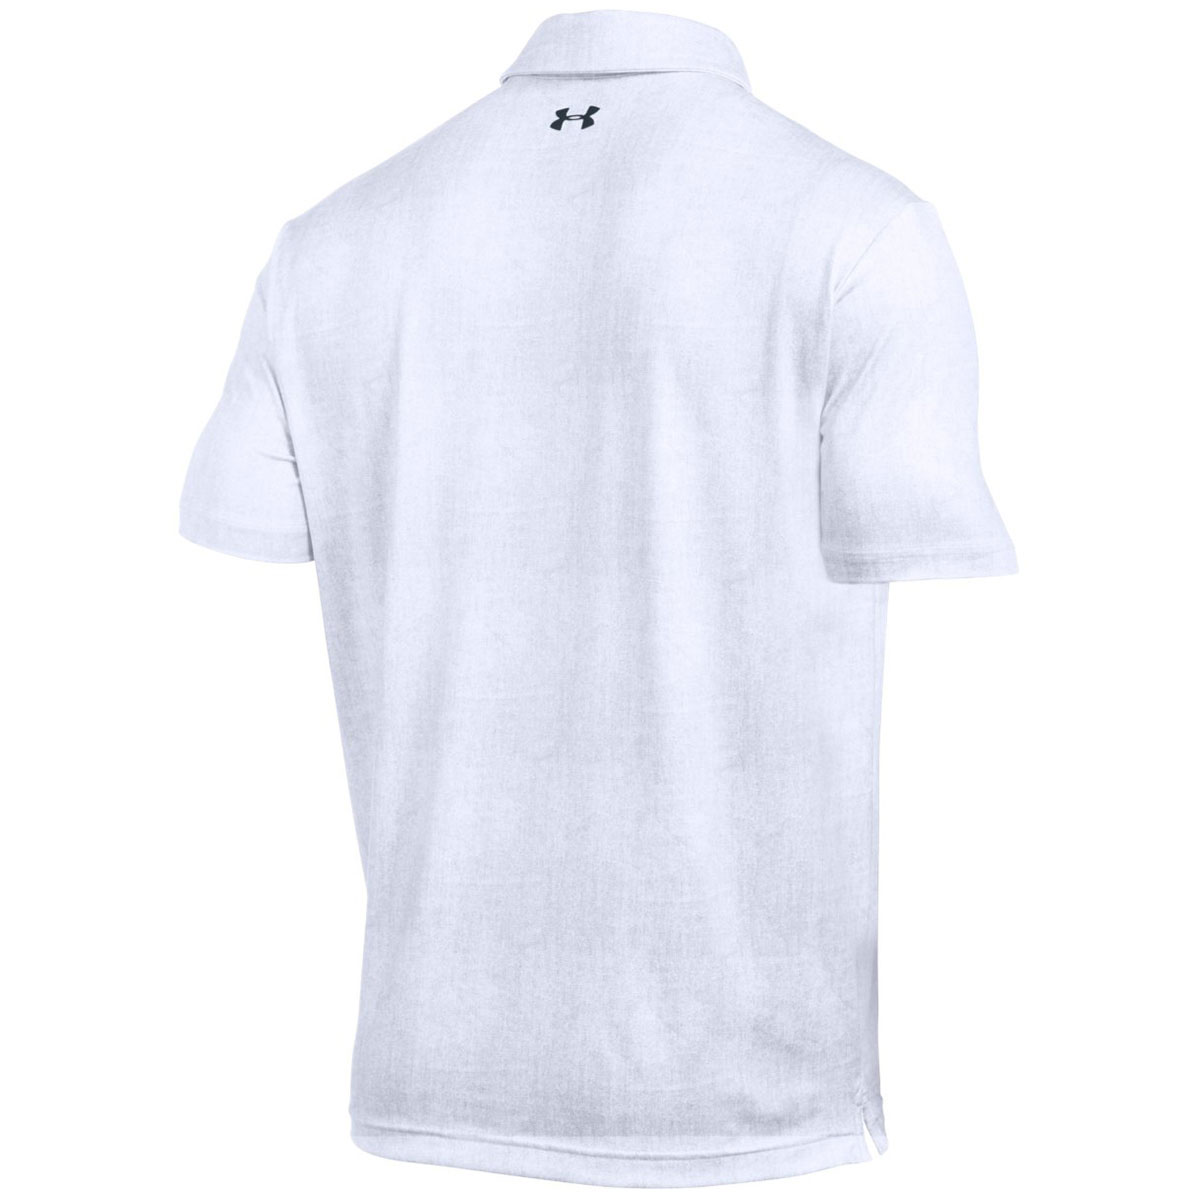 Under-Armour-Mens-UA-Playoff-Performance-Golf-Polo-Shirt-33-OFF-RRP thumbnail 125